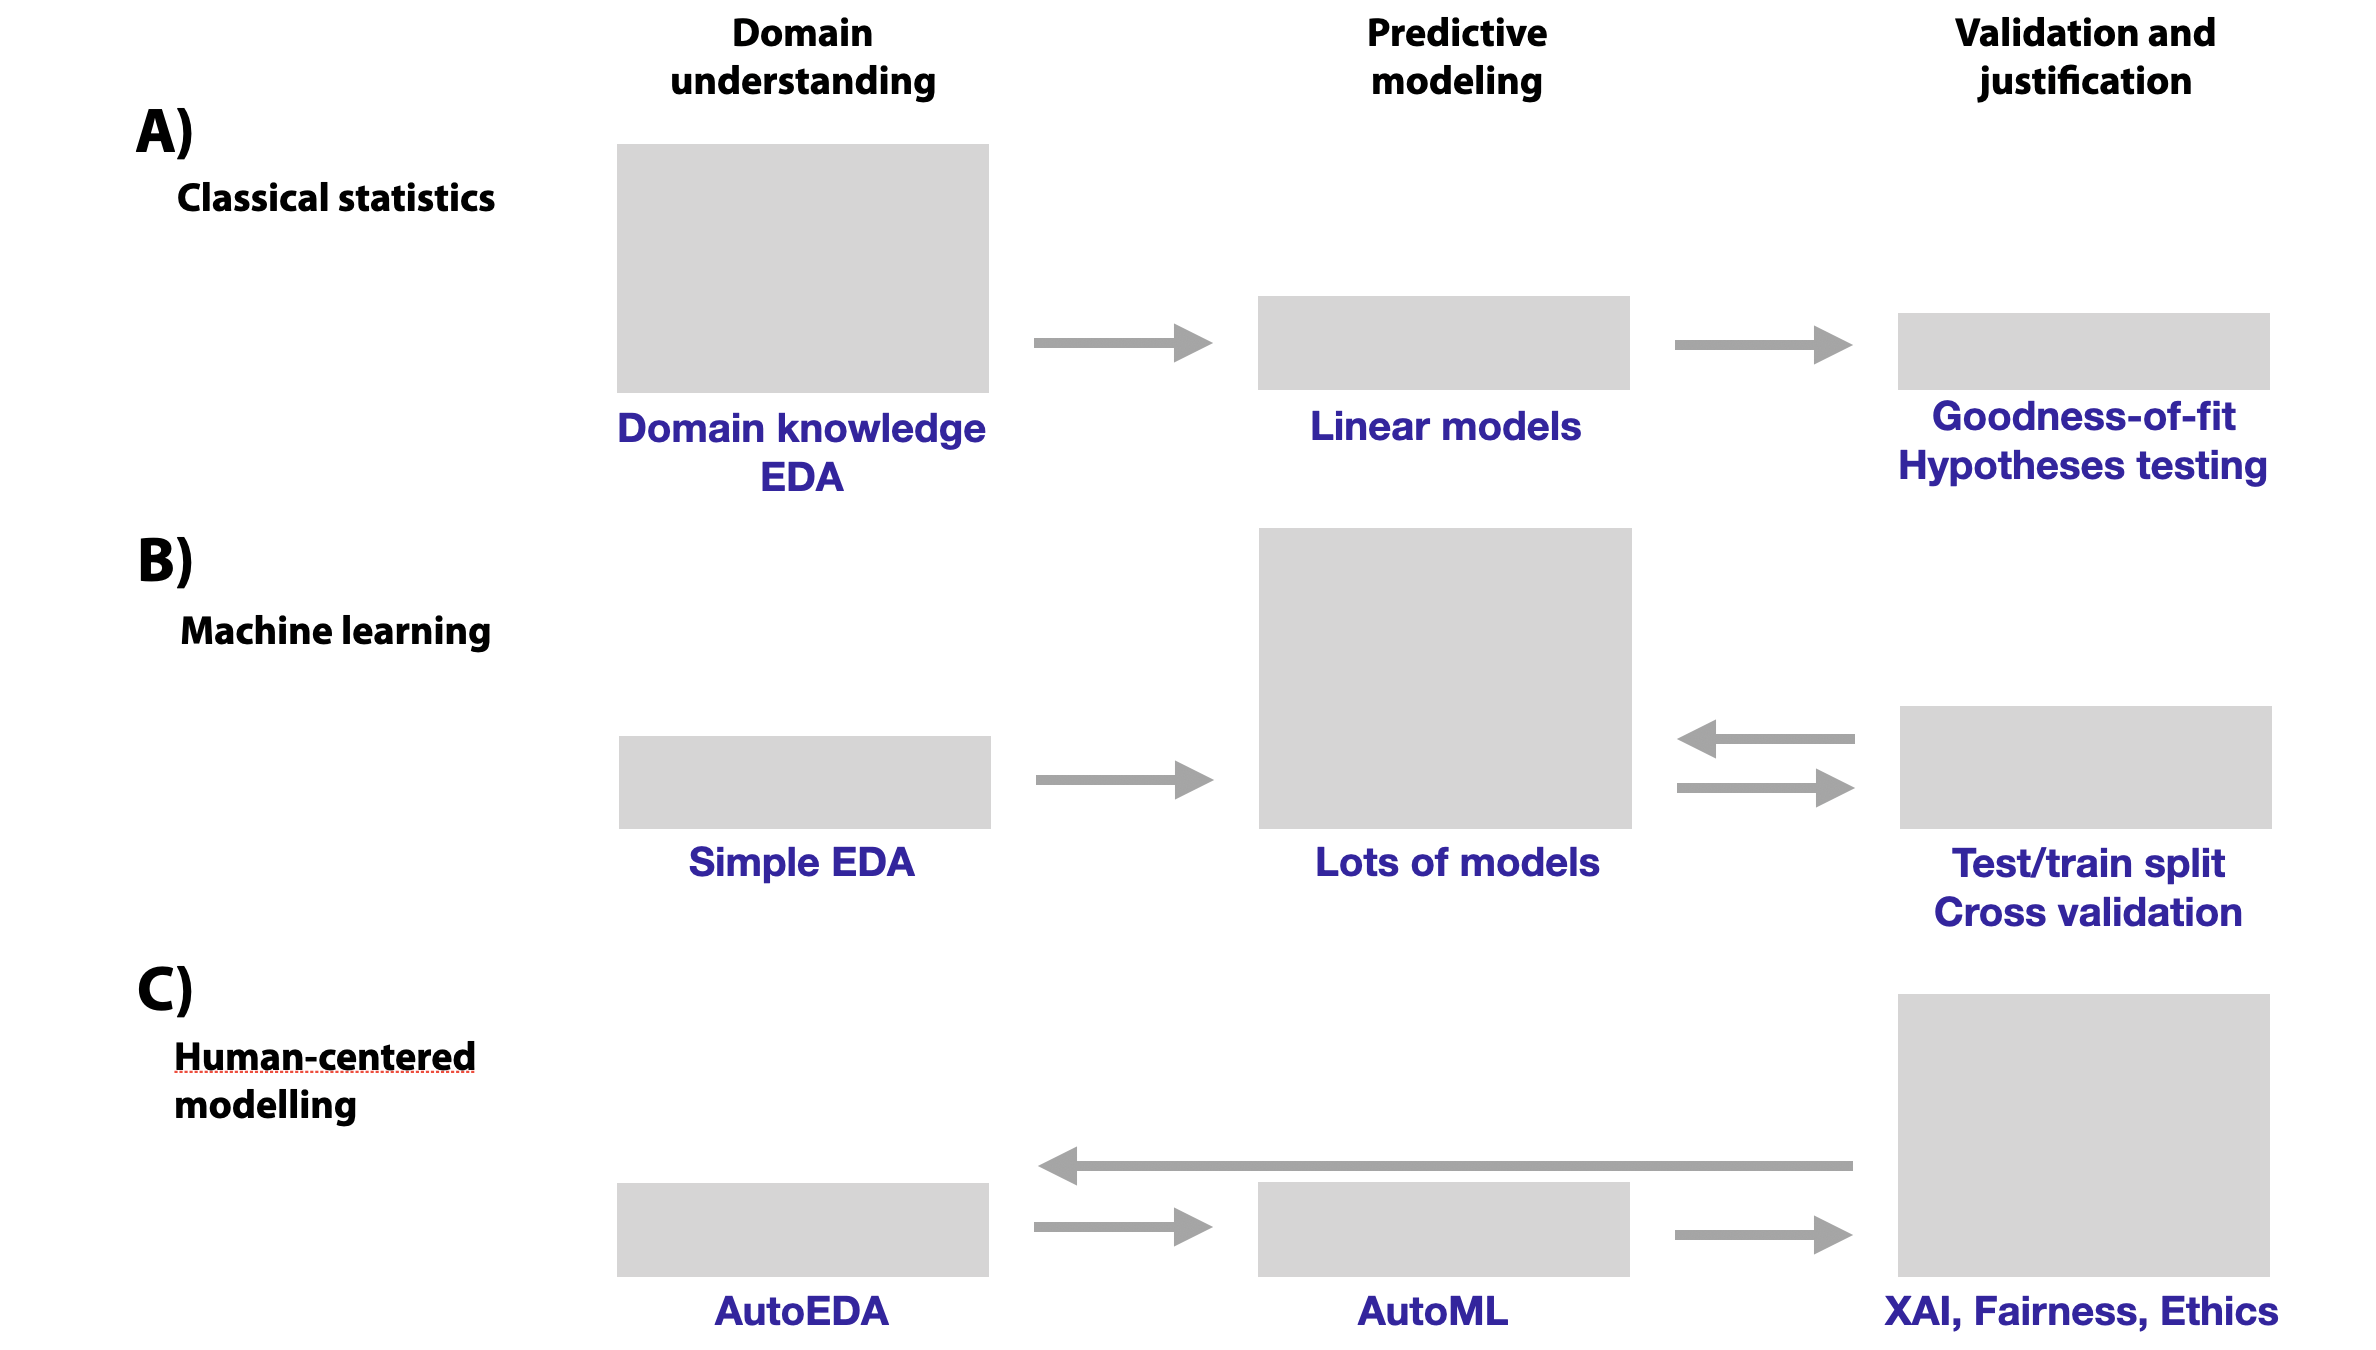 Shift in the relative importance and effort (symbolically represented by the shaded boxes) put in different phases of data-driven modelling. Arrows show feedback loops in the modelling process. (A) In classical statistics, modelling is often based on a deep understanding of the application domain combined with exploratory data analysis (EDA). Most often, (generalized) linear models are used. Model validation includes goodness-of-fit evaluation and hypothesis testing. (B) In machine learning (ML), domain knowledge and EDA are often limited. Instead, flexible models are fitted to large volumes of data to obtain a model offering a good predictive performance. Evaluation of the performance (applying strategies like cross-validation to deal with overfitting) gains in importance, as validation provides feedback to model construction. (C) In the (near?) future, auto-EDA and auto-ML will shift focus even further to model validation that will include the use of explainable artificial intelligence (XAI) techniques and evaluation of fairness, ethics, etc. The feedback loop is even longer now, as the results from model validation will also be helping in domain understanding.